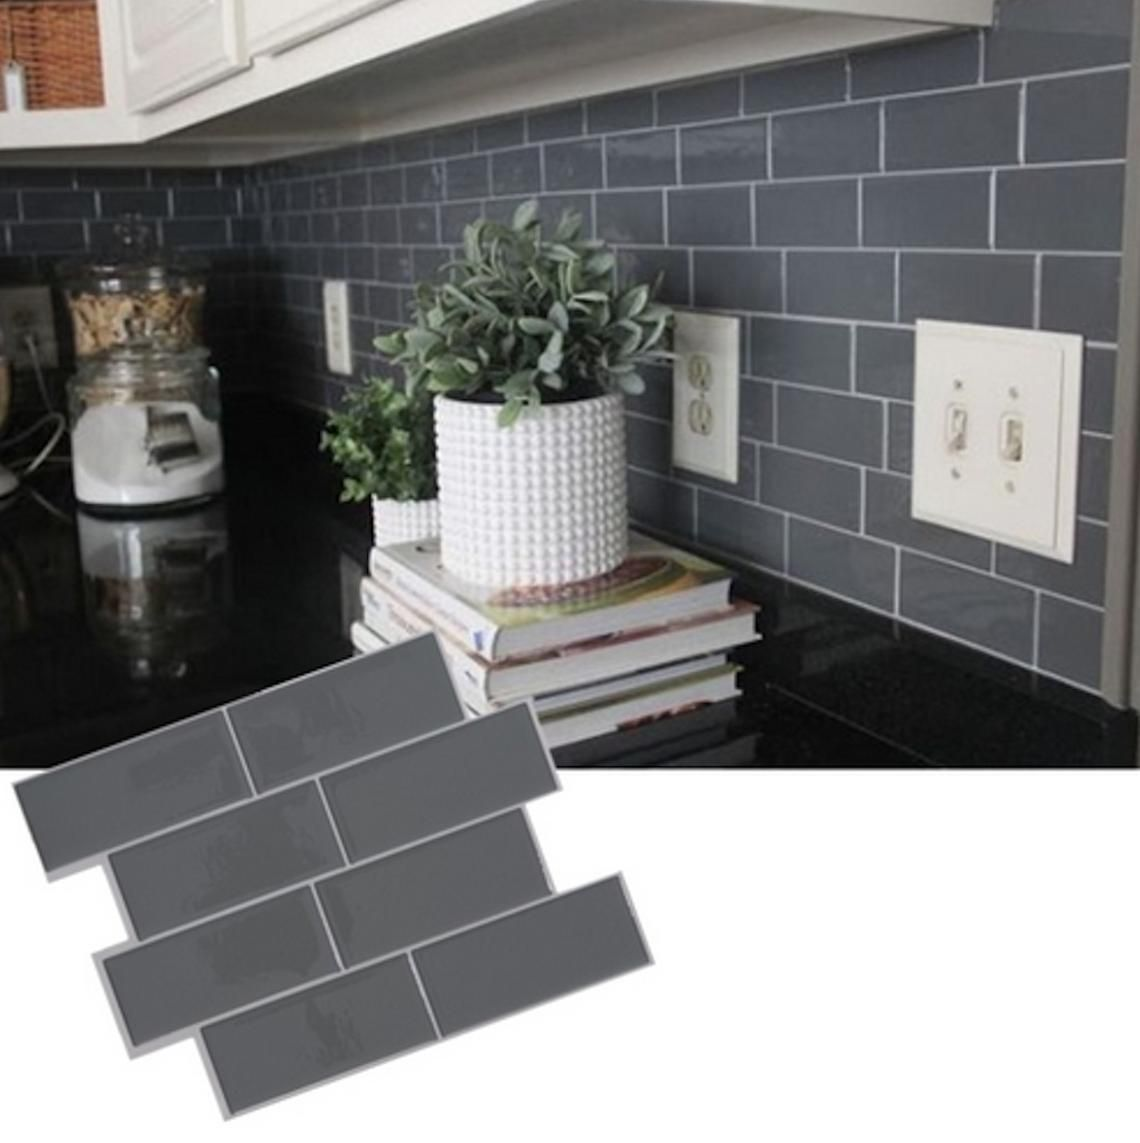 image 0 Removable wallpaper kitchen, Adhesive tiles